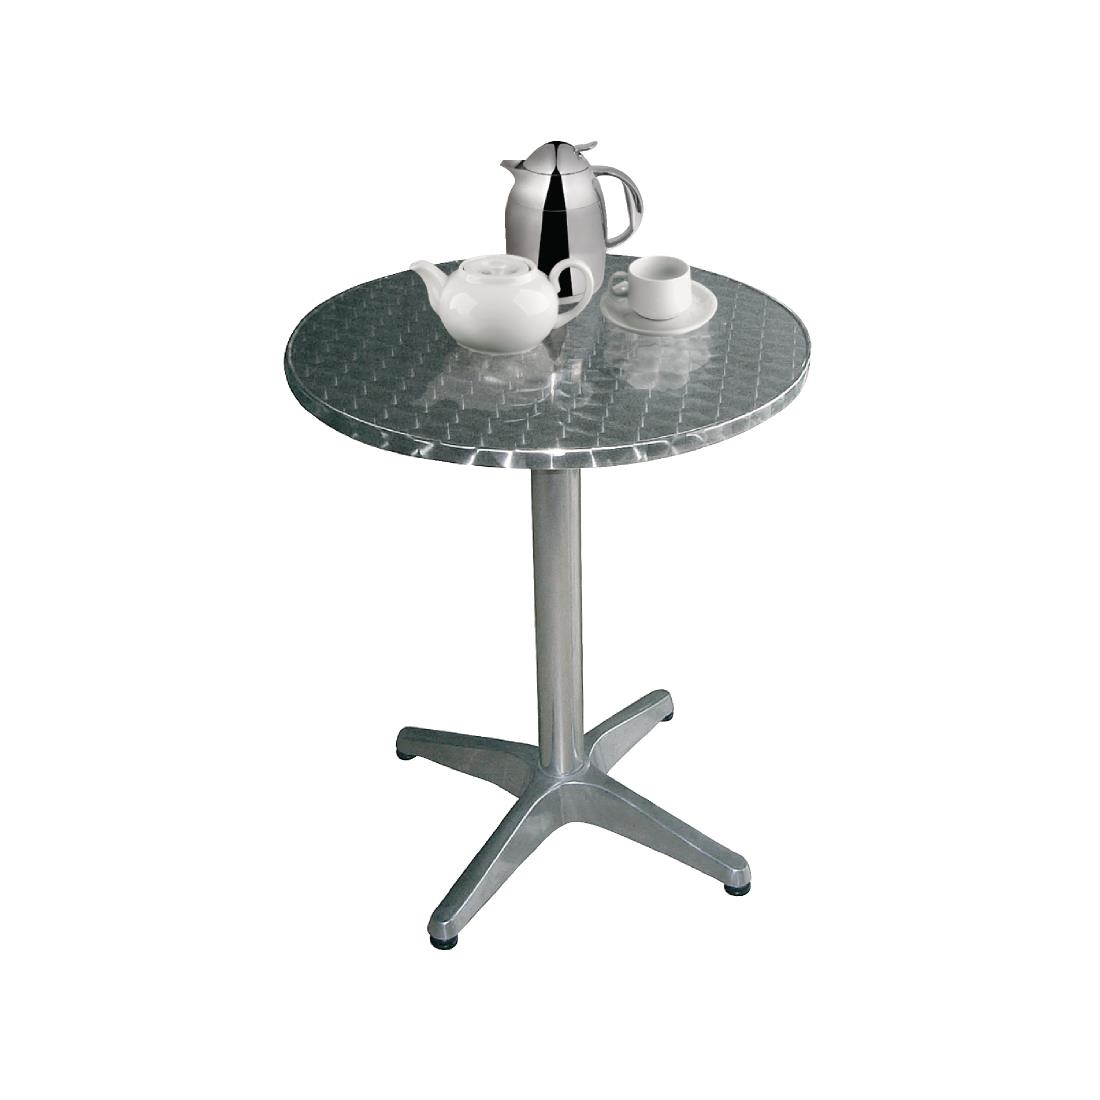 Image of Bolero Round Bistro Table Stainless Steel 800mm